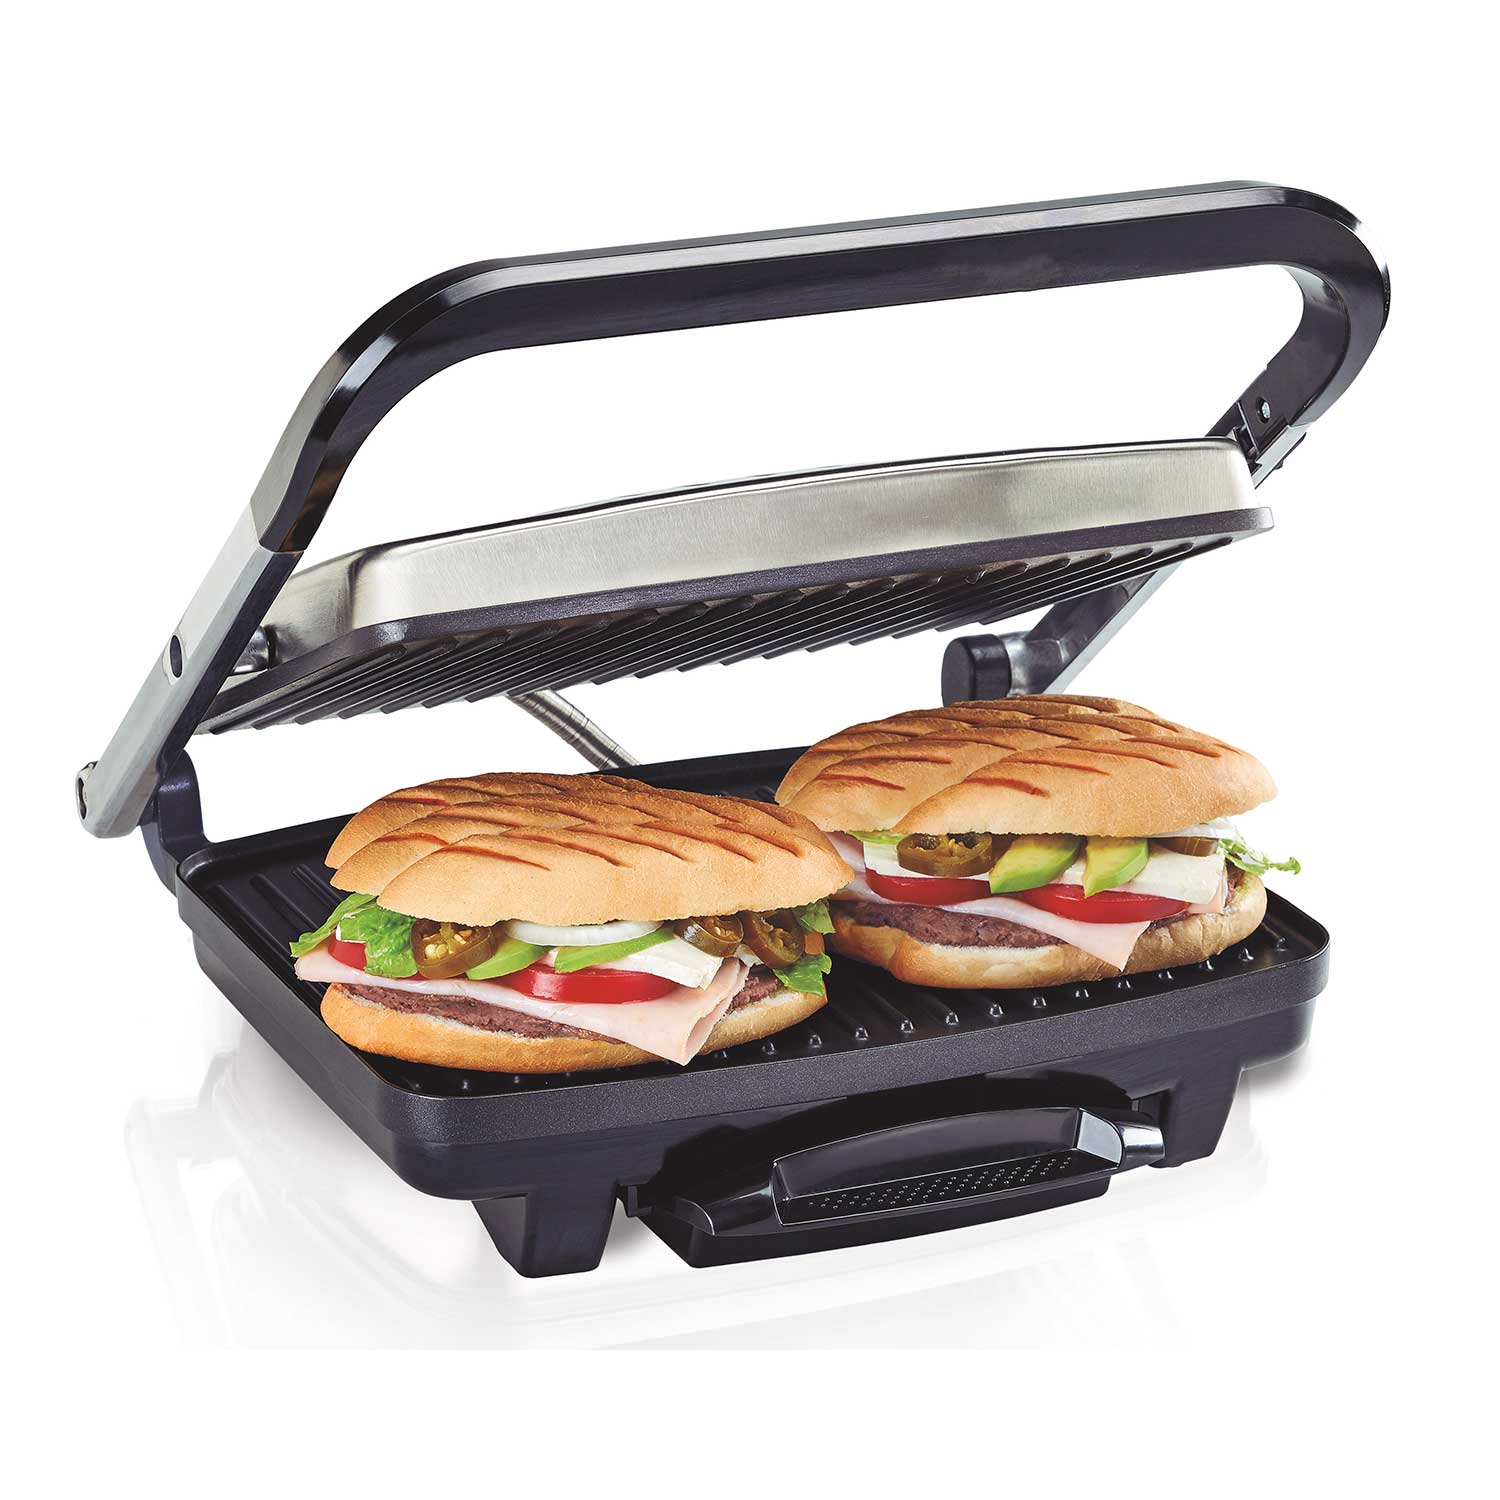 Grille Panini Hamilton Beach Panini Press Indoor Grill 25410